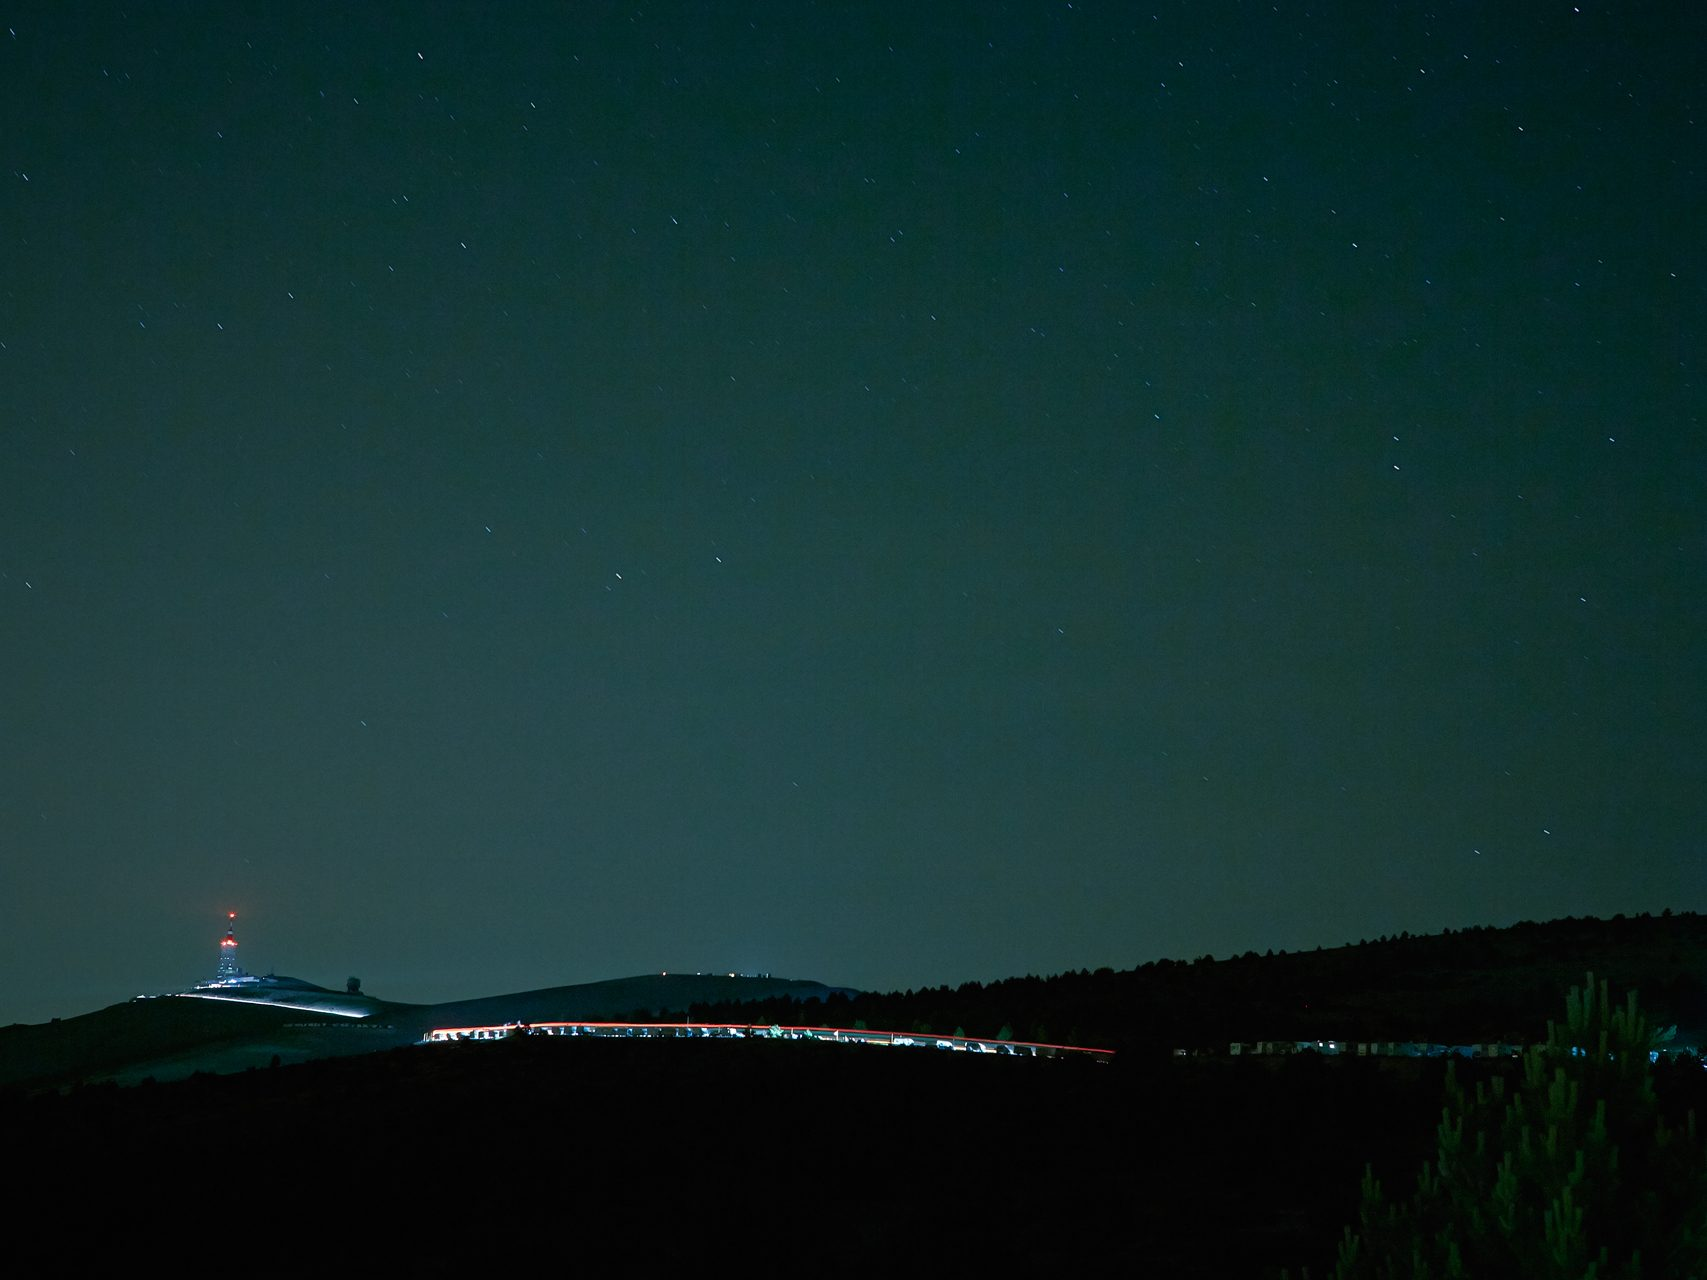 Mont Ventoux by night